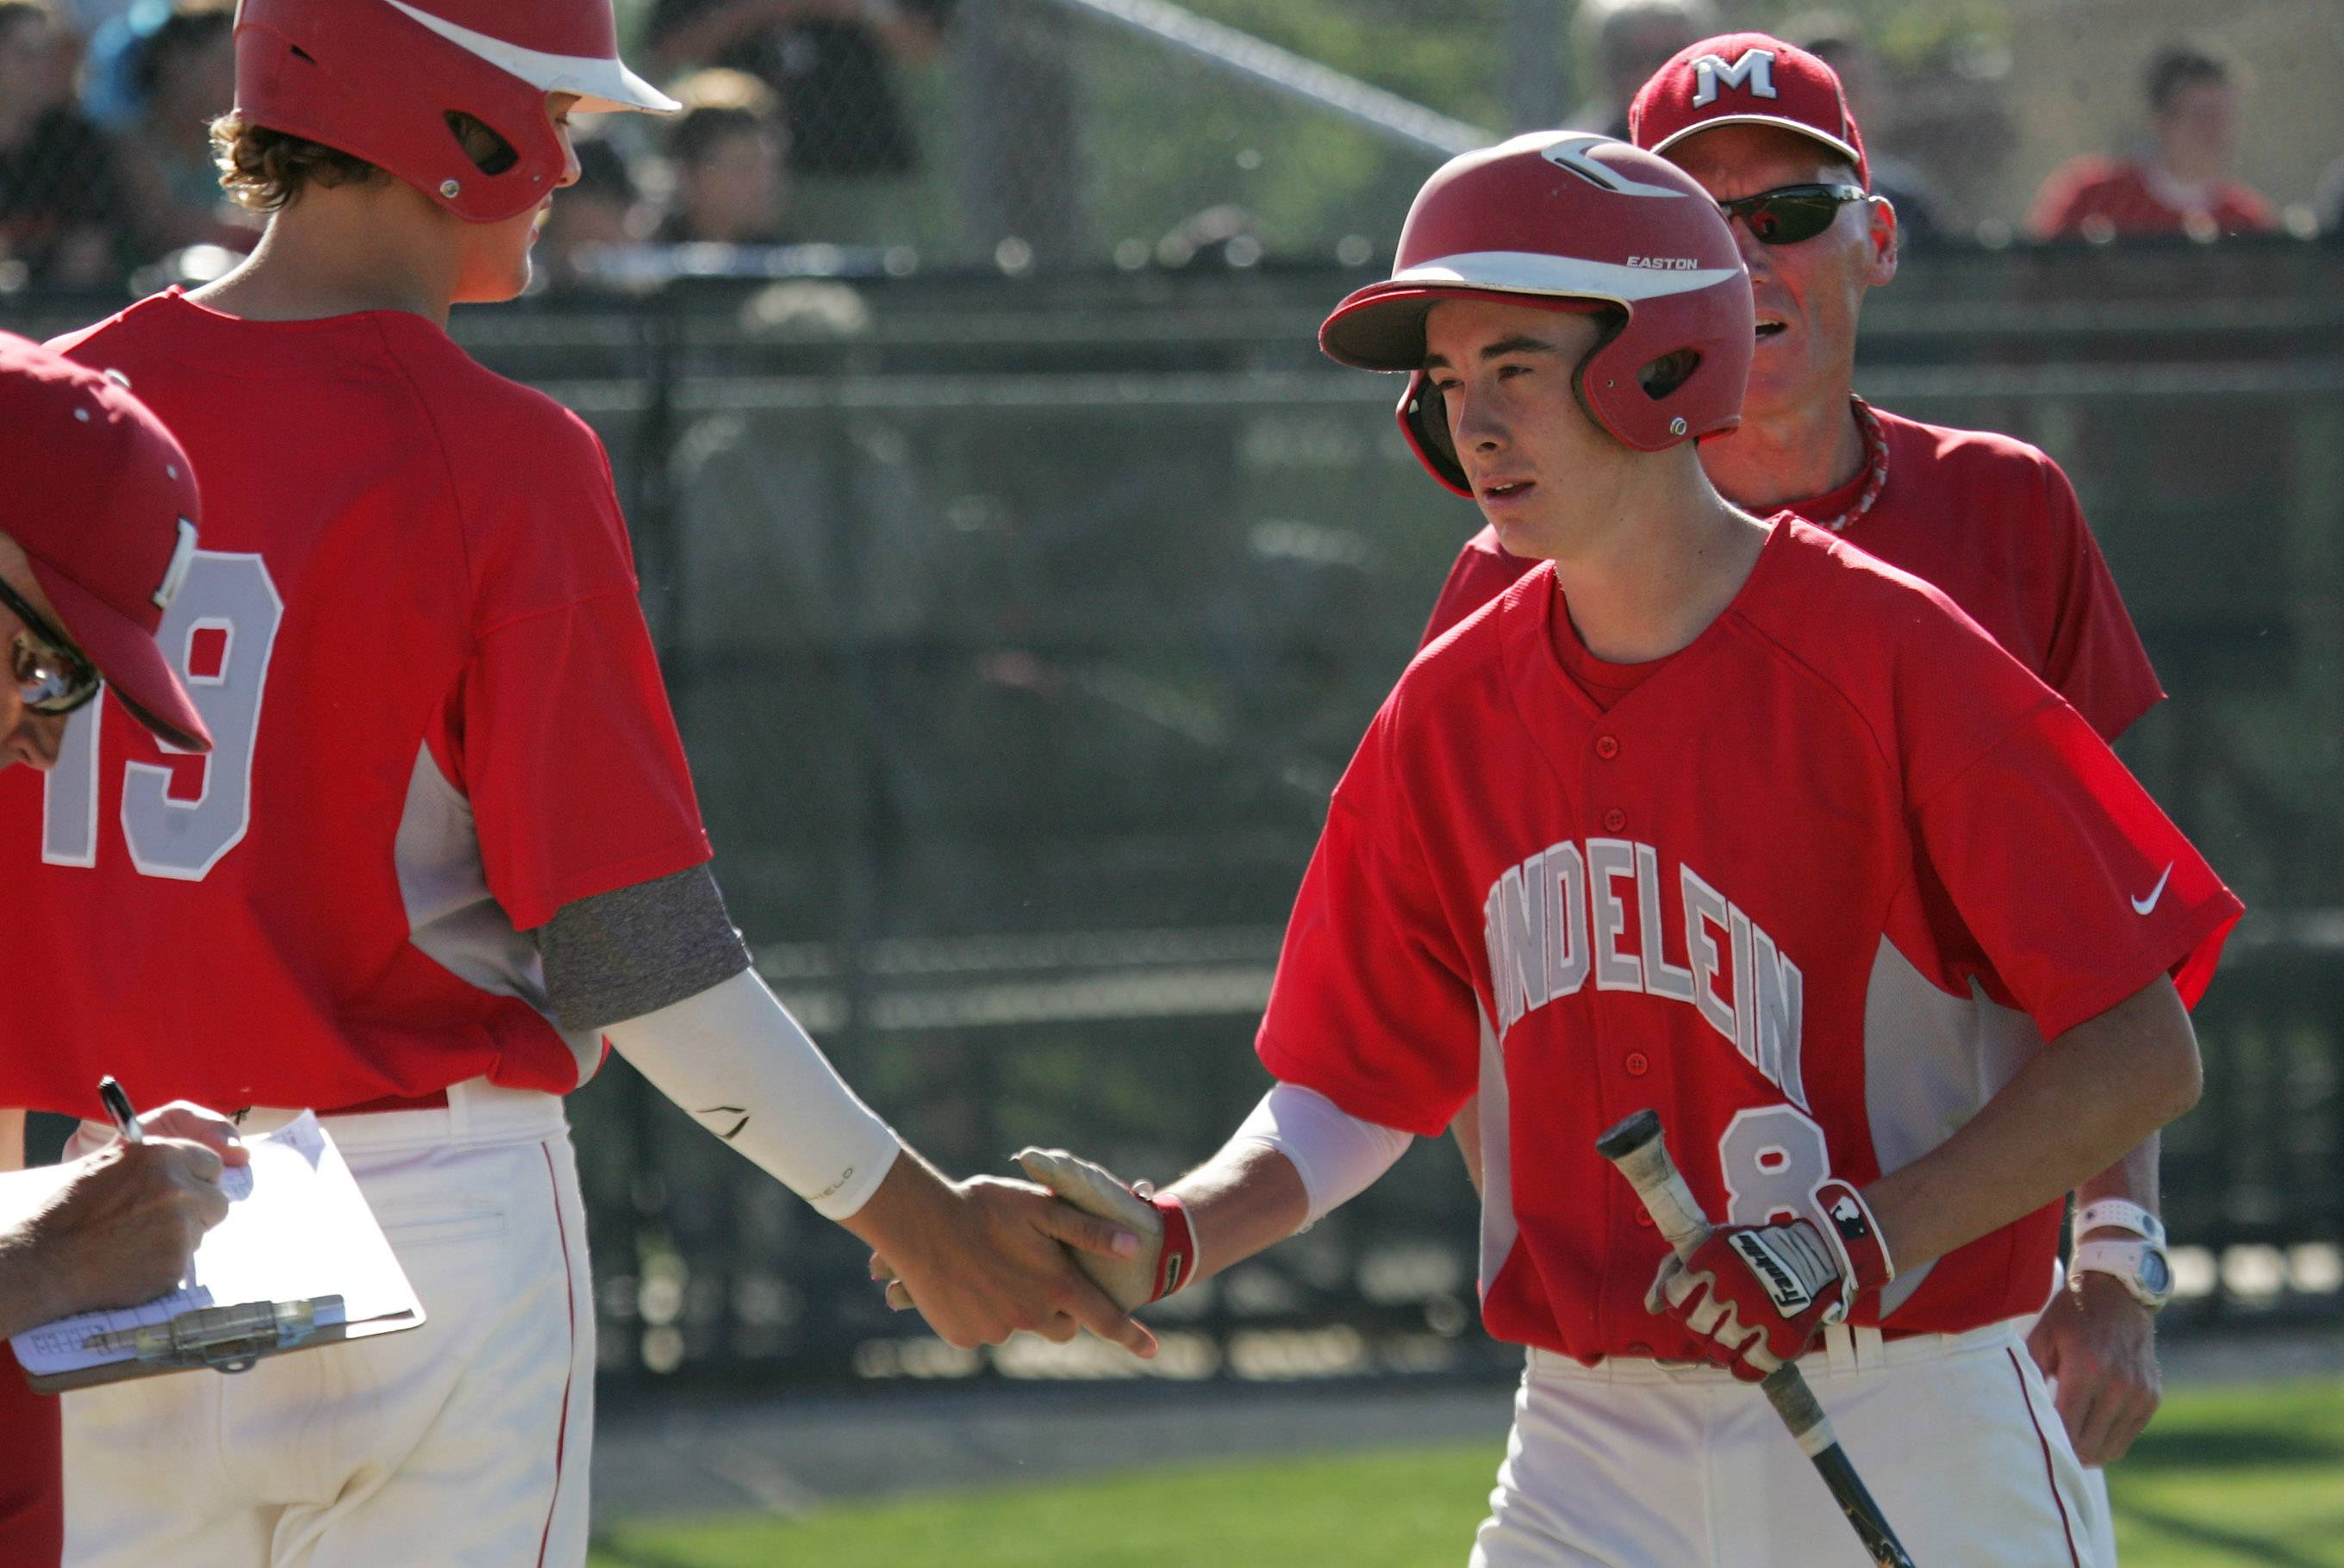 Mundelein's Derek Parola, right, is congratulated by teammate Reese Dolan after scoring a run in the third inning against Glenbrook South in Class 4A baseball sectional semifinal action Thursday in in Glenview.